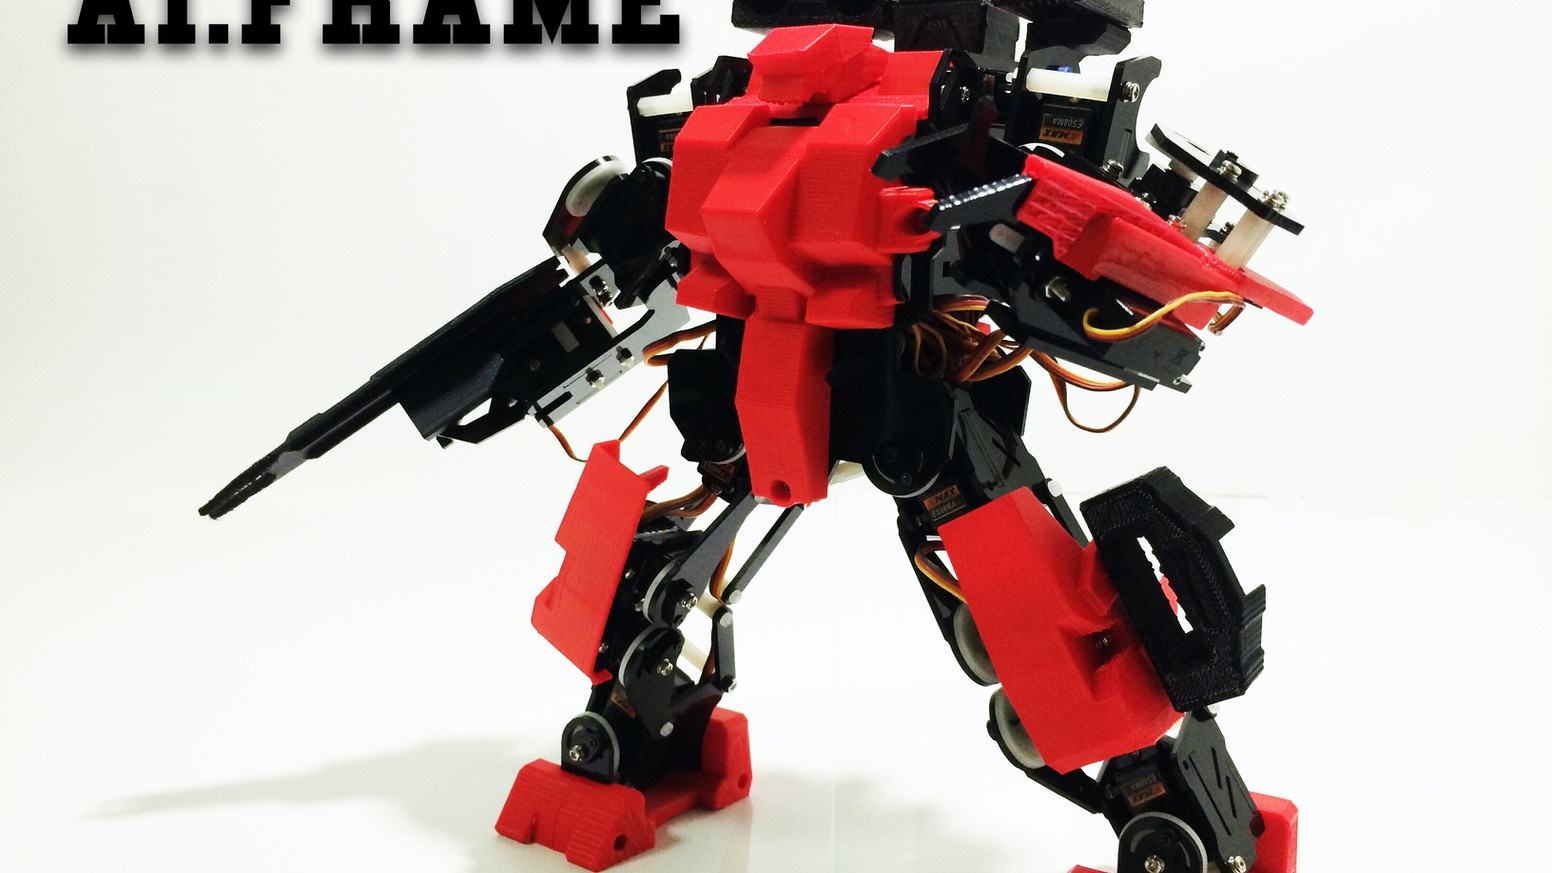 Aiame age of humanoid robot by aiame kickstarter frame age of humanoid robot solutioingenieria Image collections